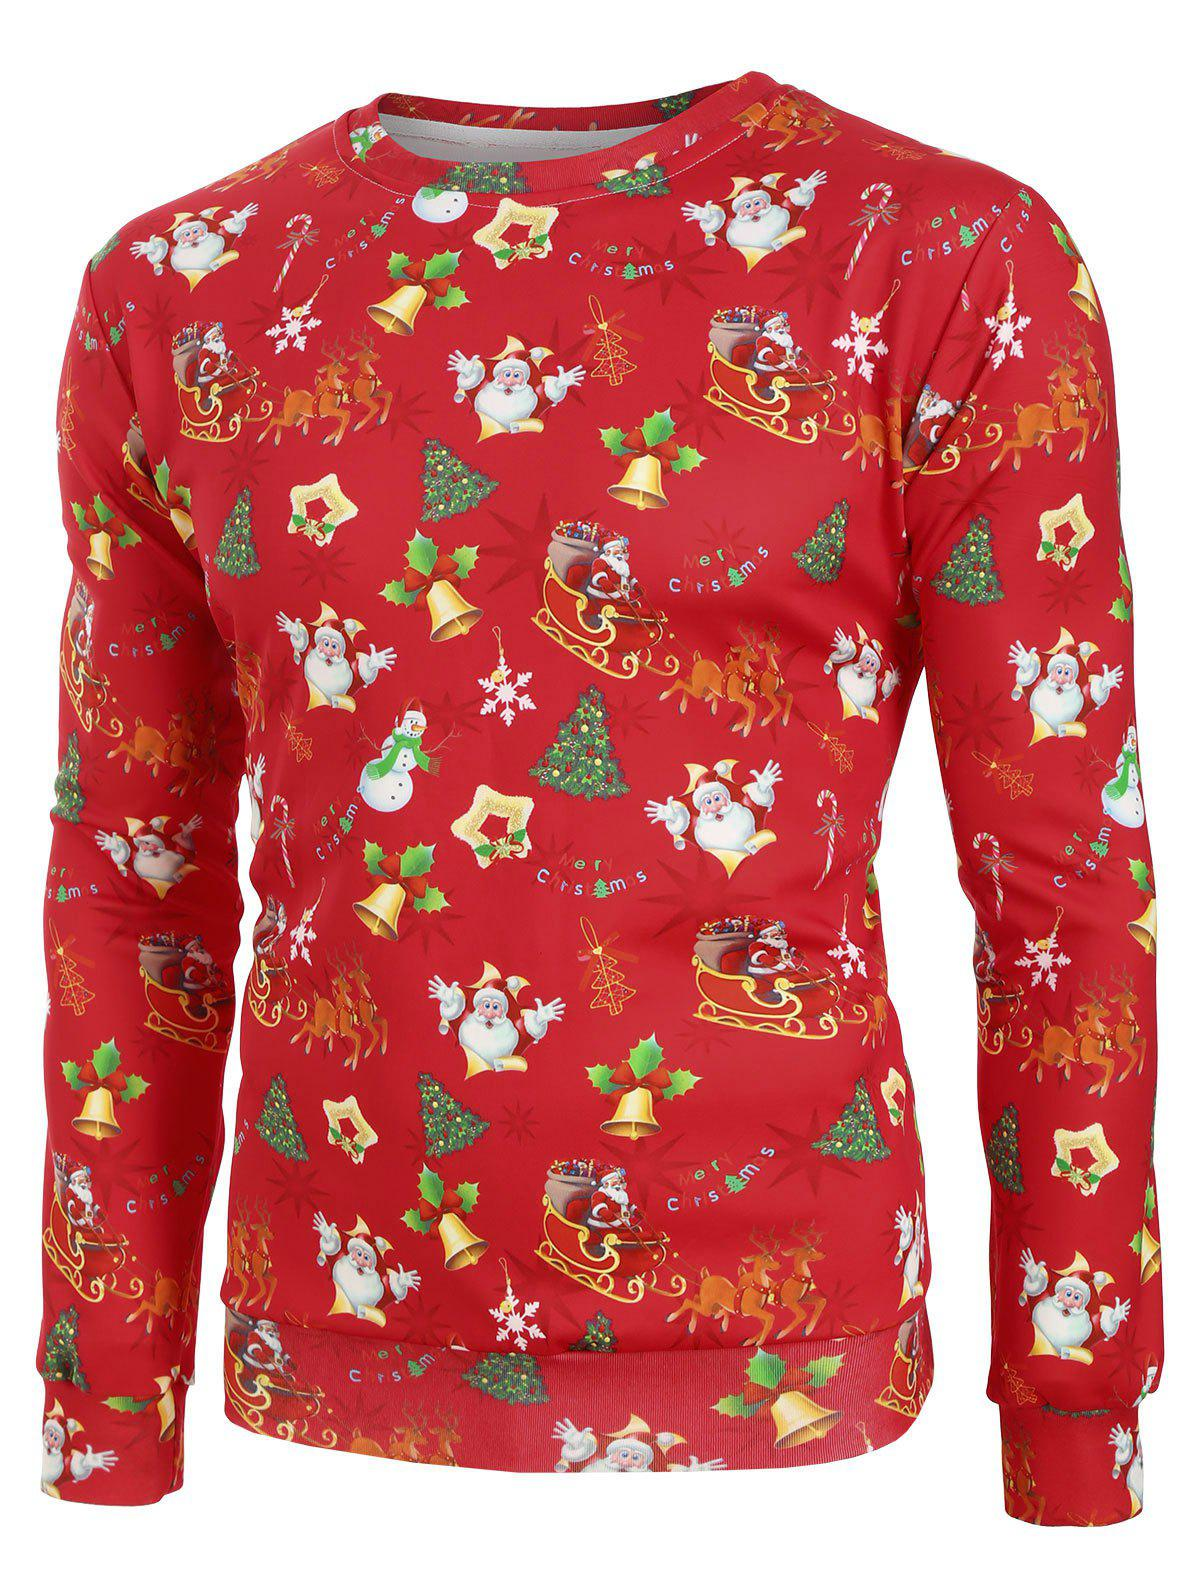 Christmas Pattern Allover Print Casual Sweatshirt - multicolor 2XL